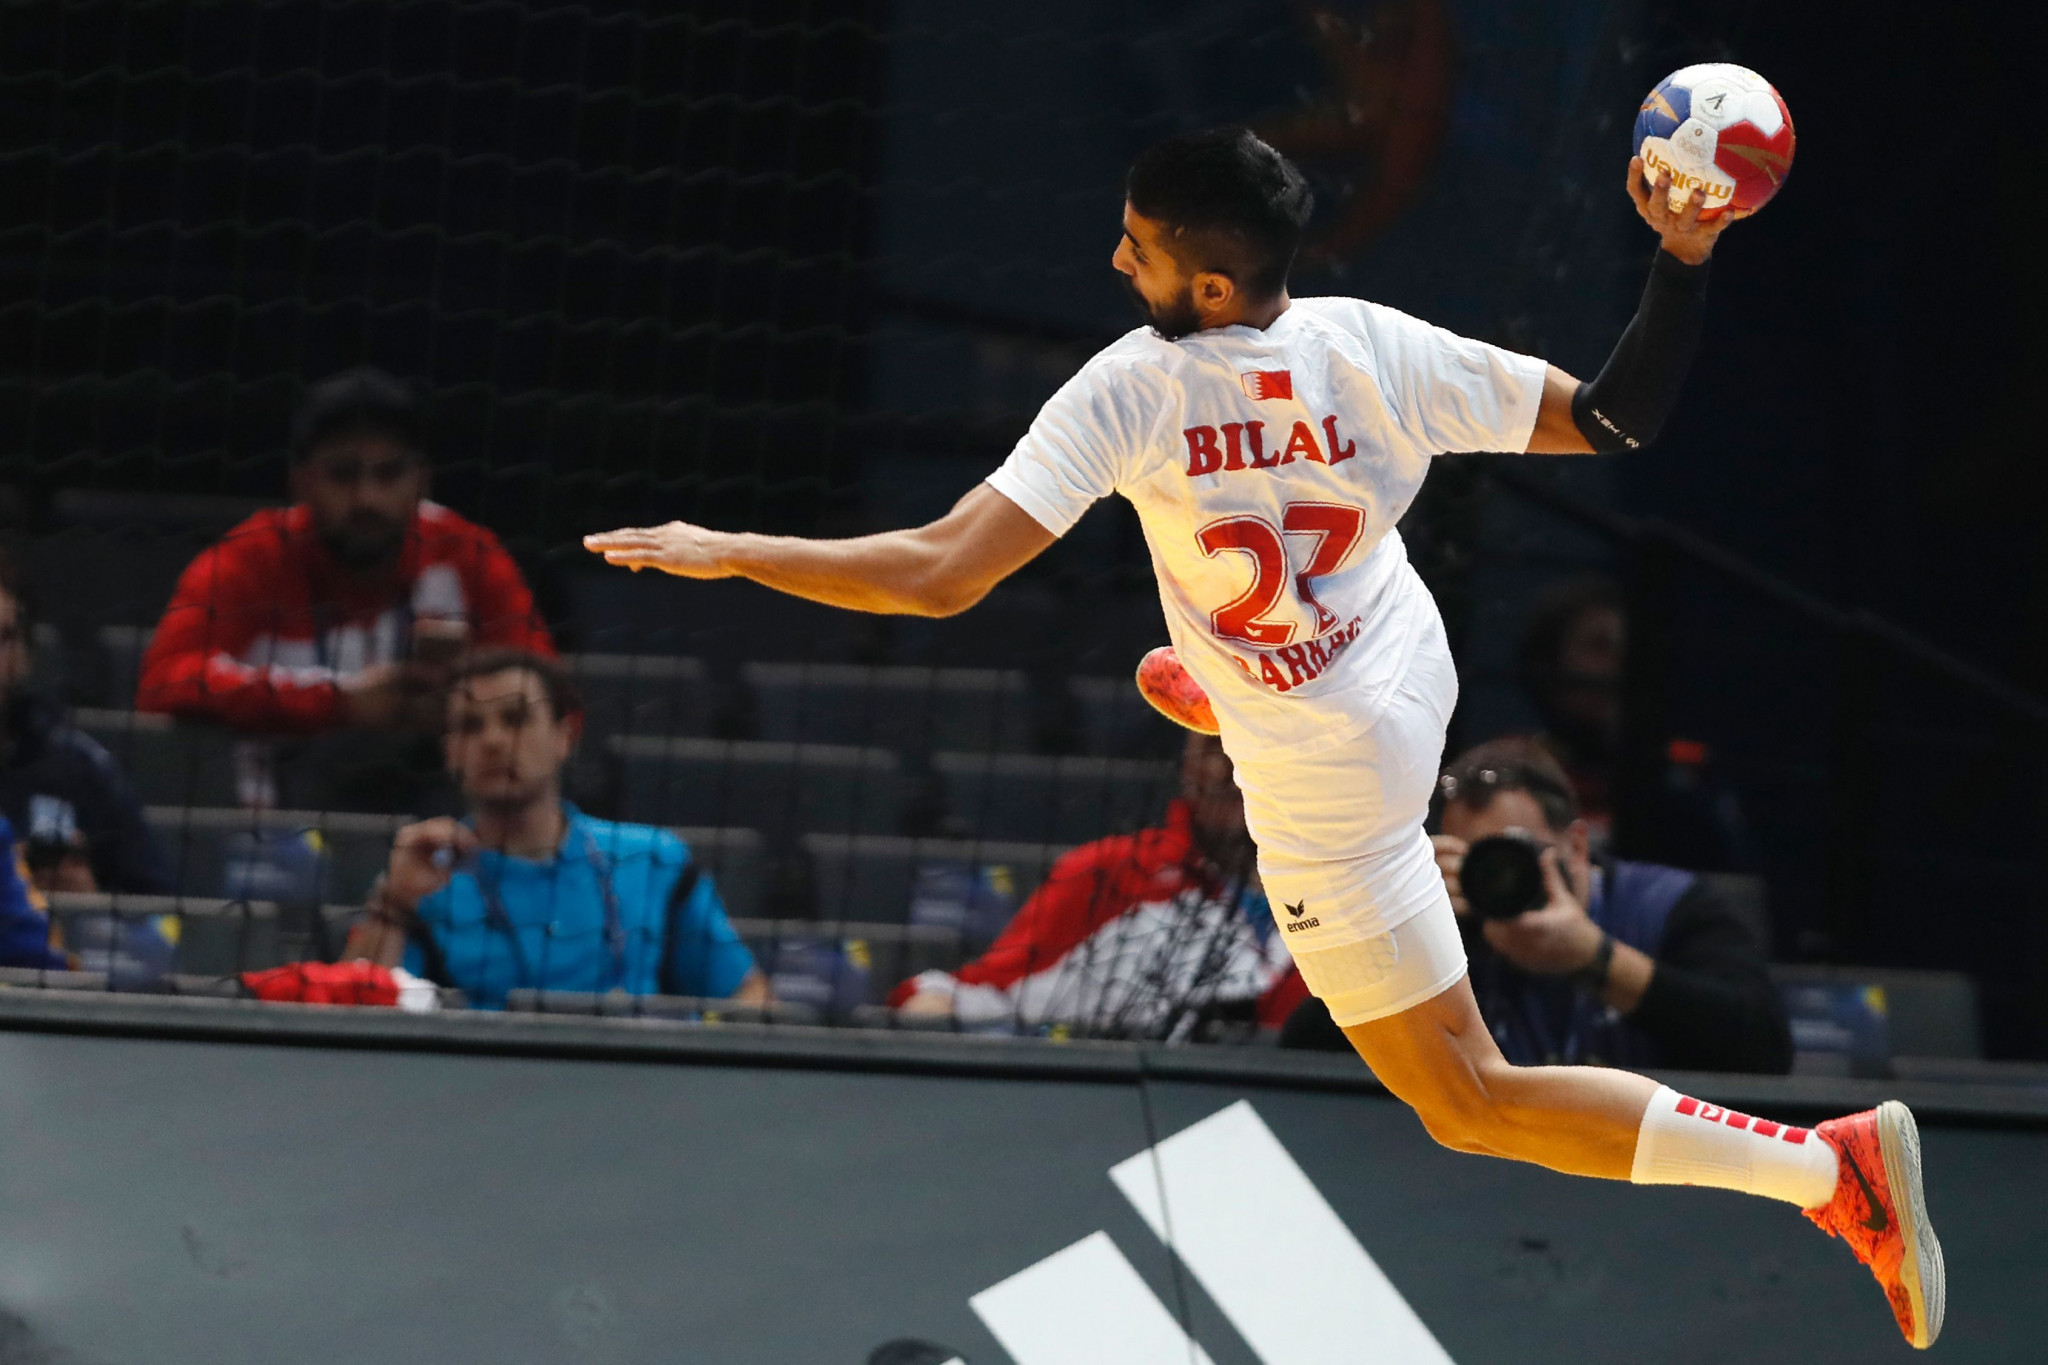 The Bahrain Handball Federation has suggested introducing a third standard colour ©Getty Images